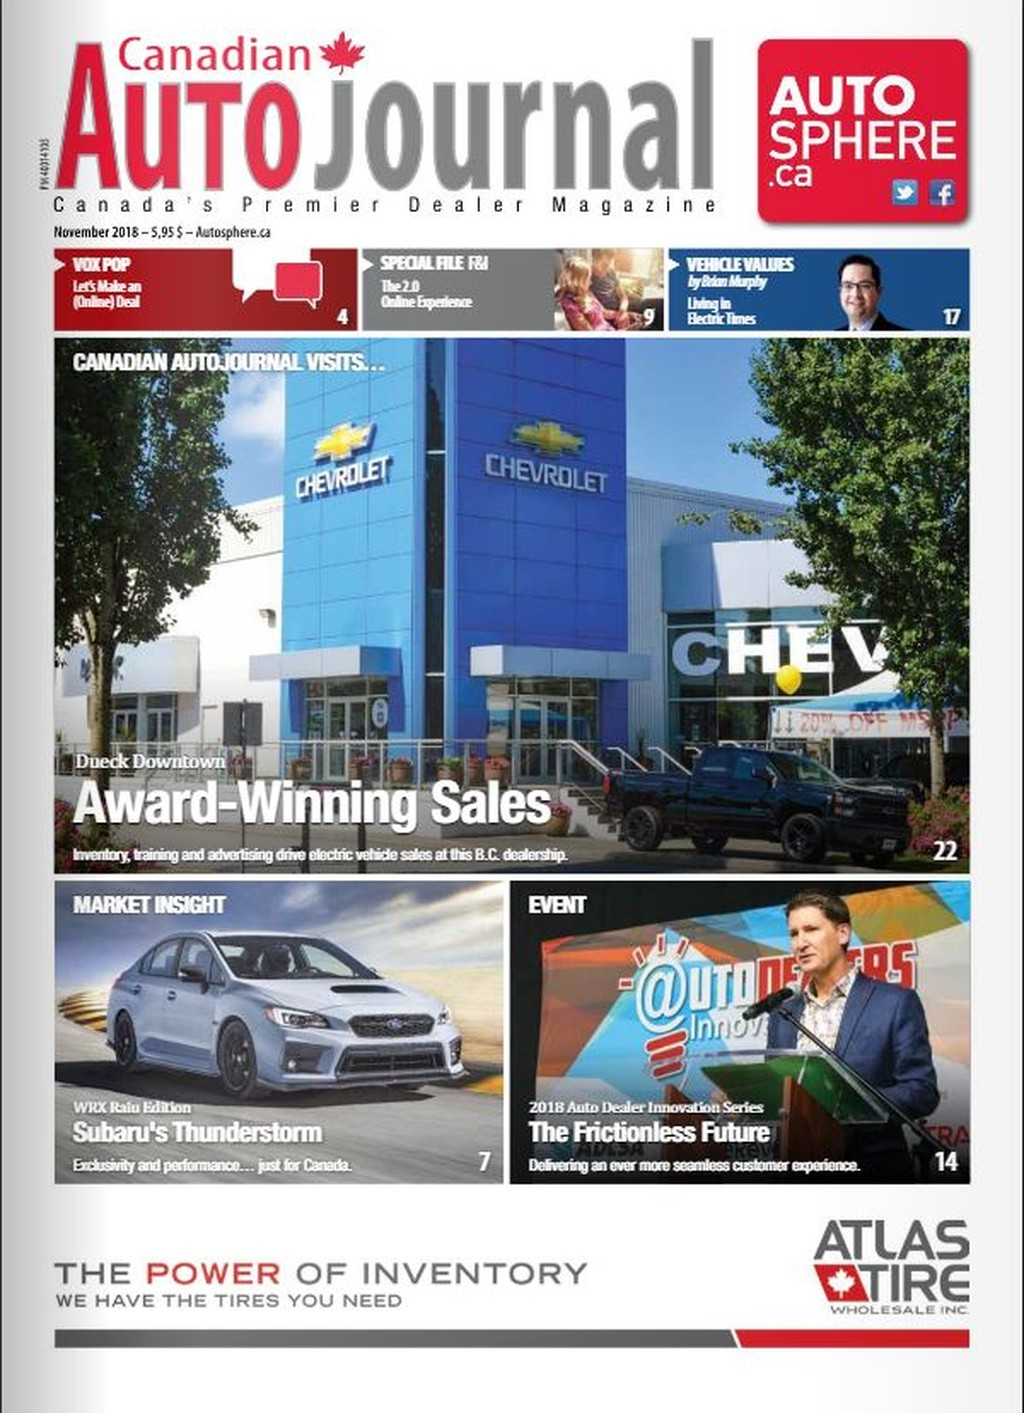 Cover of Canadian Autojournal magazine (English edition), November 2018 issue